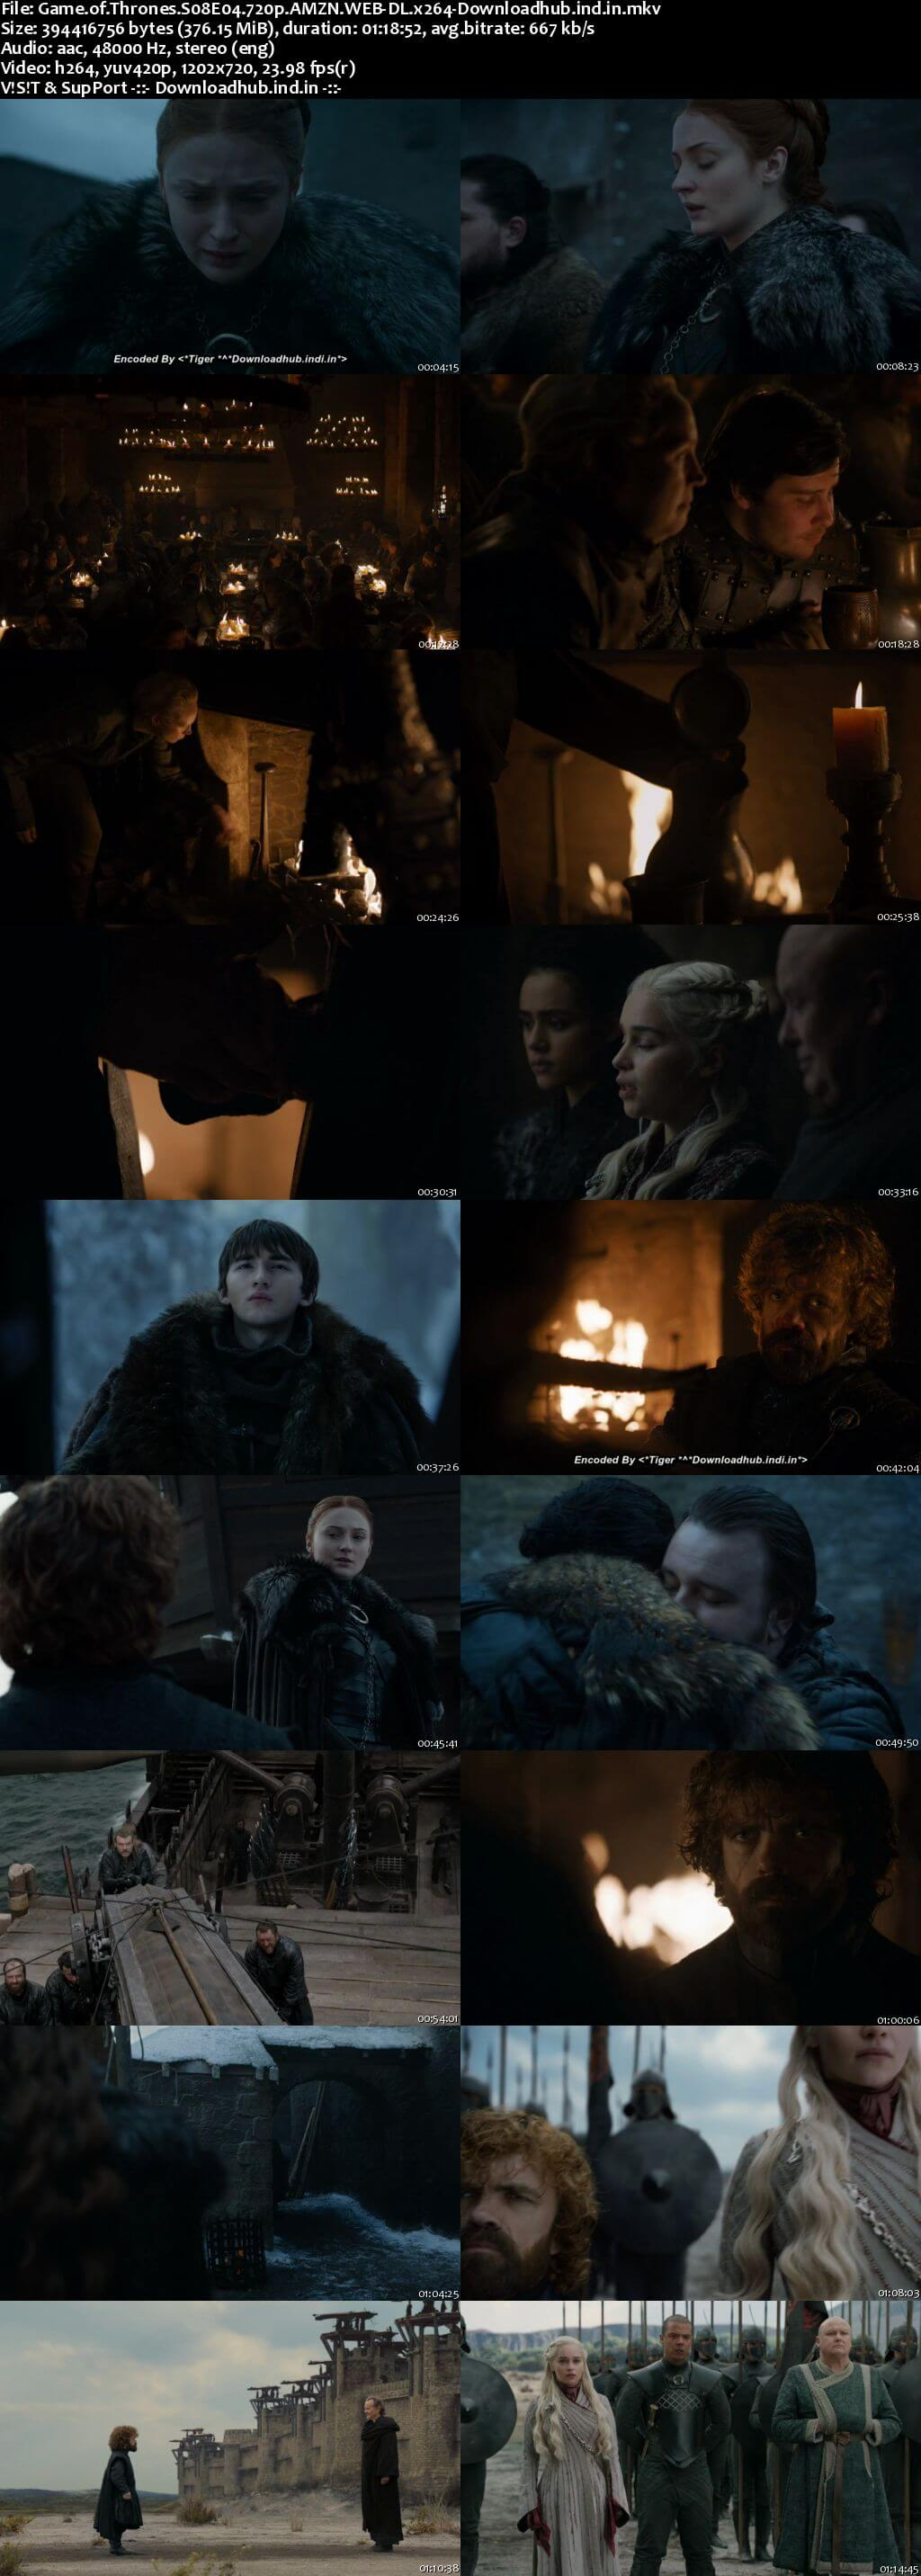 Game of Thrones S08E04 350MB AMZN WEB-DL 720p ESubs